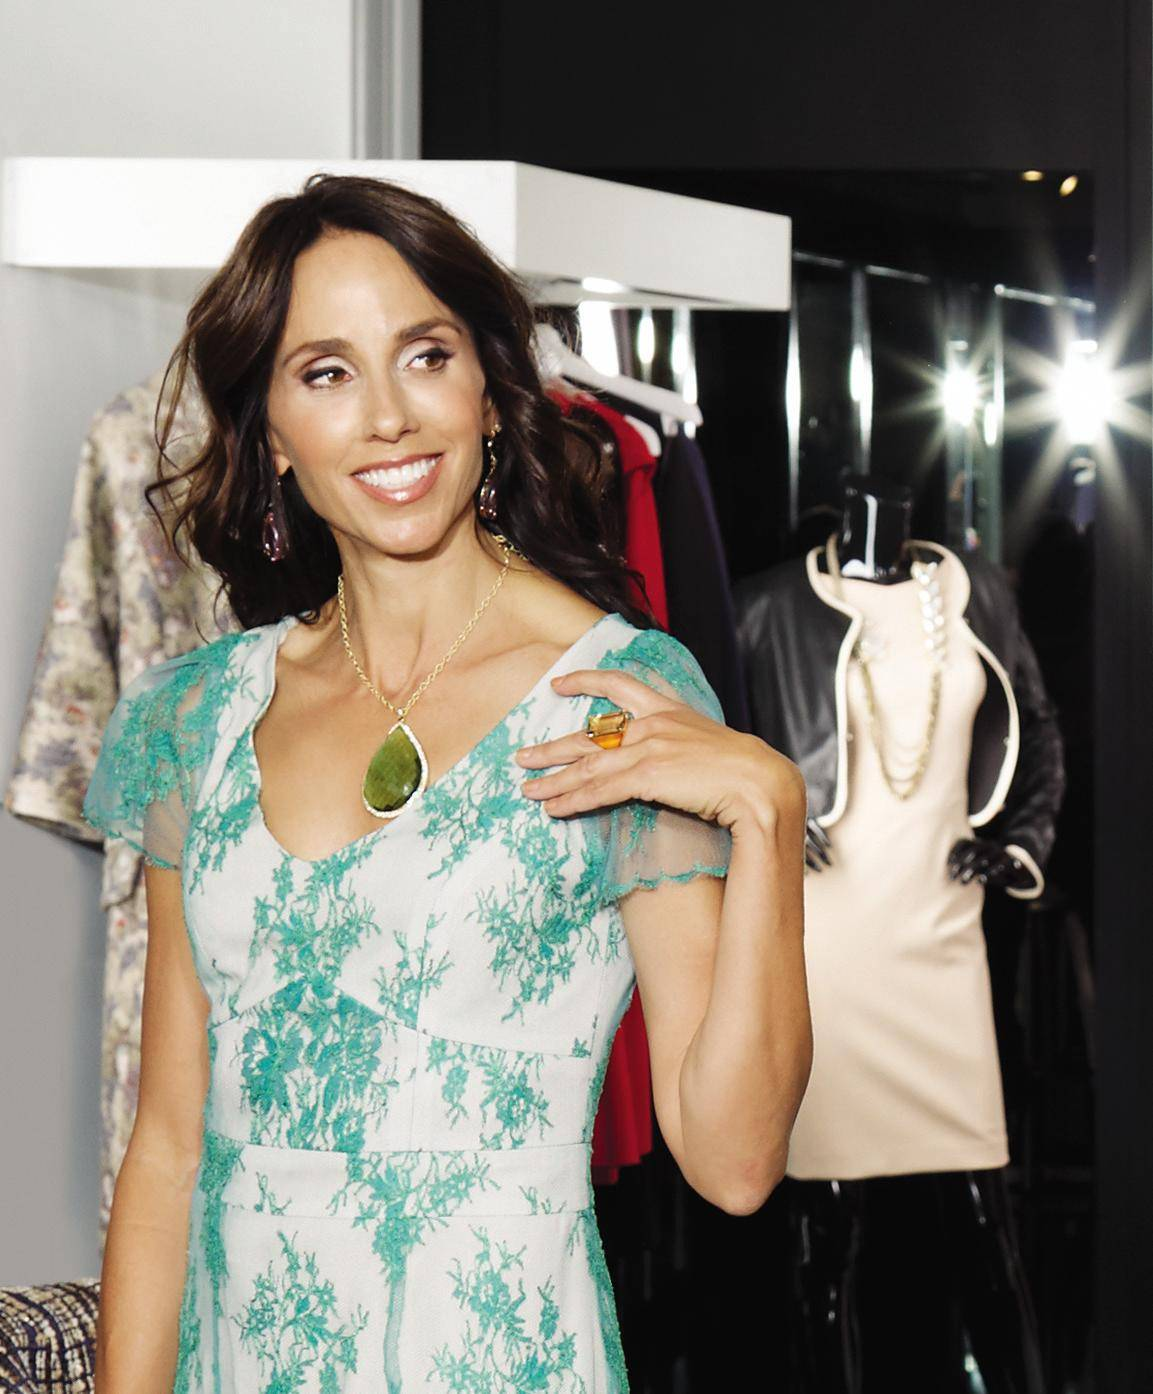 Lepa Roskopp isthe co-founder/designerofMisahara Jewelry and Cofounder of True Collection.